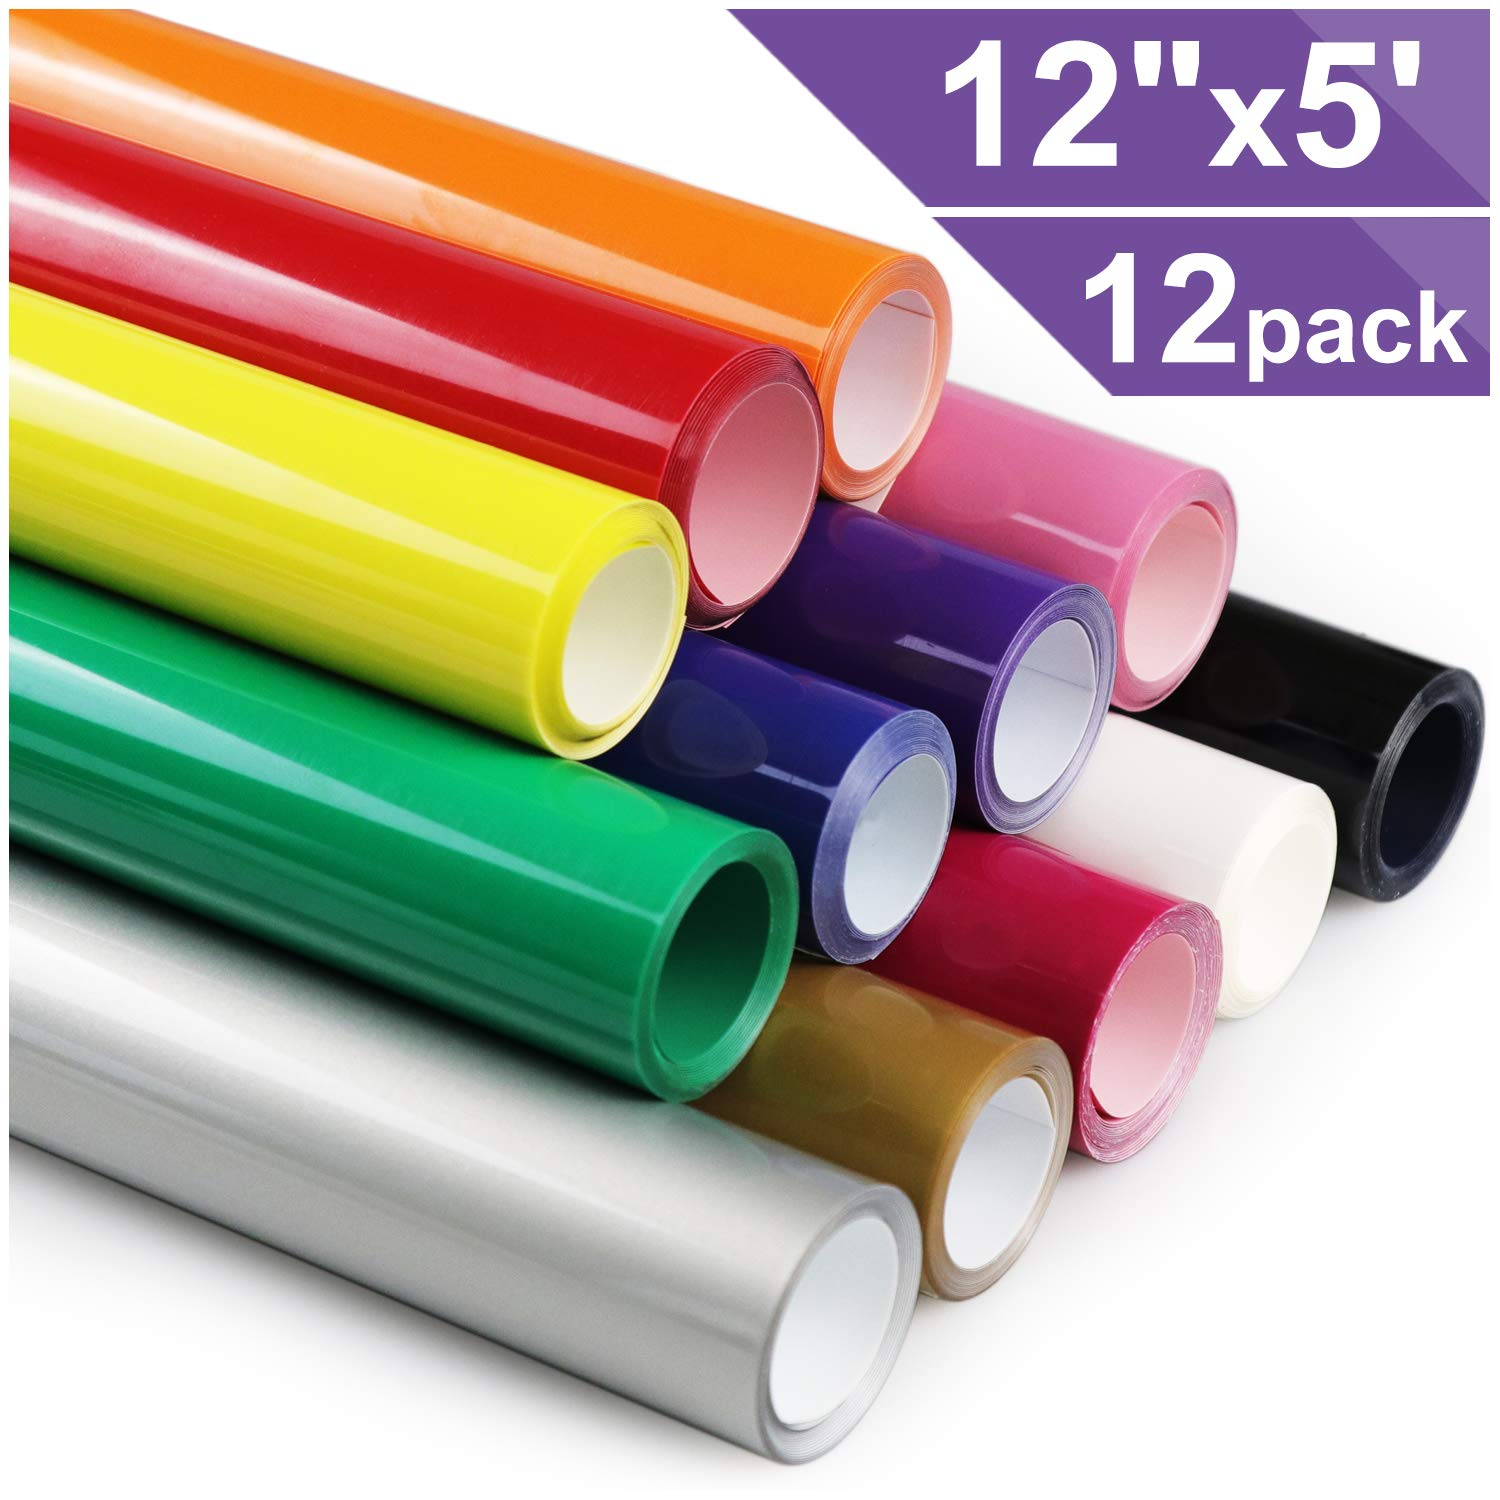 Heat Transfer Vinyl HTV for T-Shirts 12 Inches by 5 Feet Rolls (12 Pack) by ARHIKY